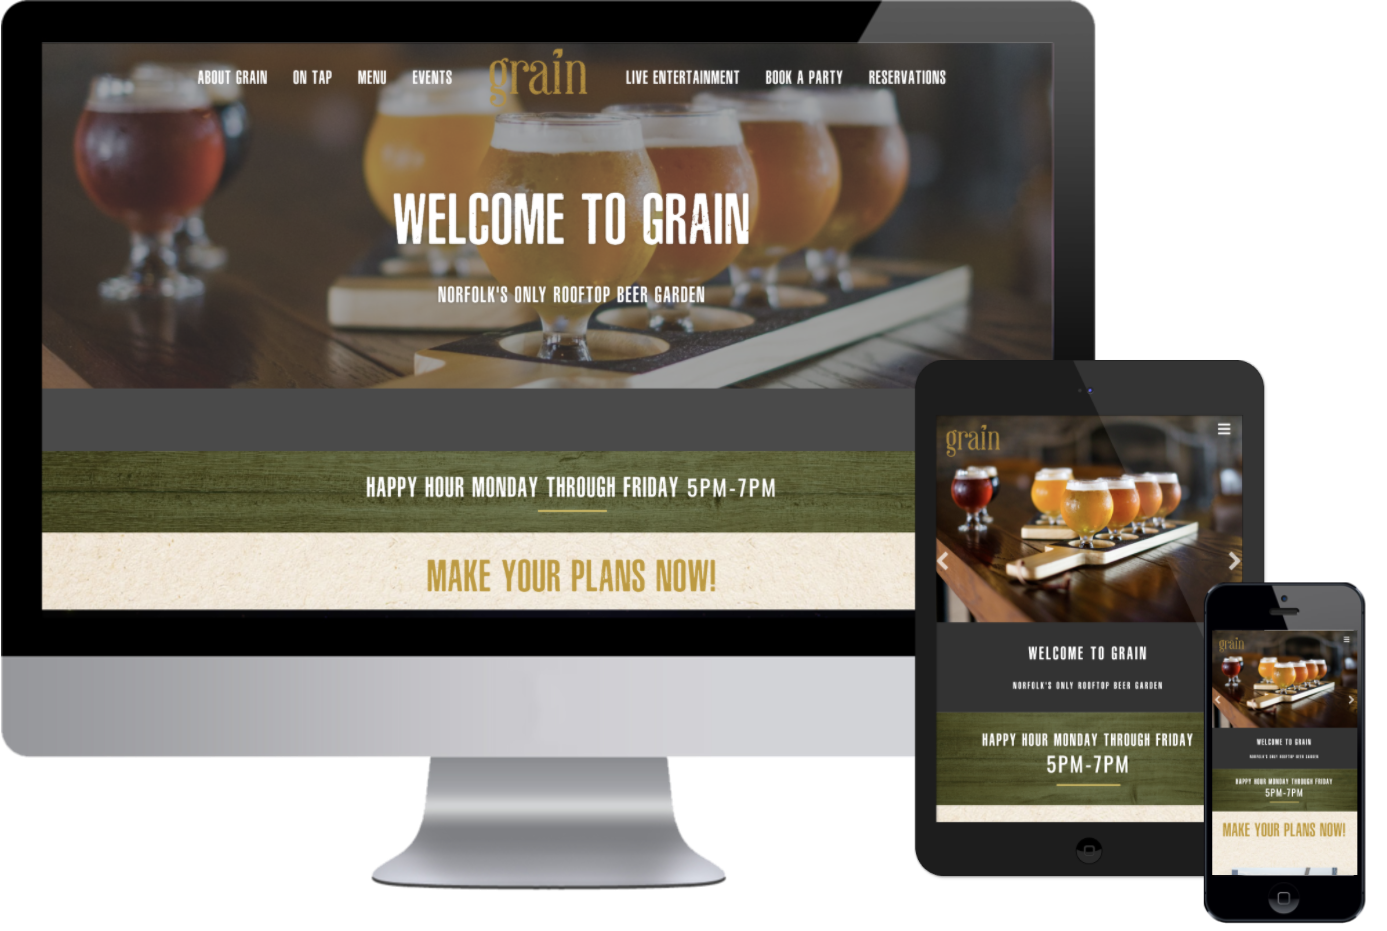 Grain now has a responsive website that Greenstone made for them